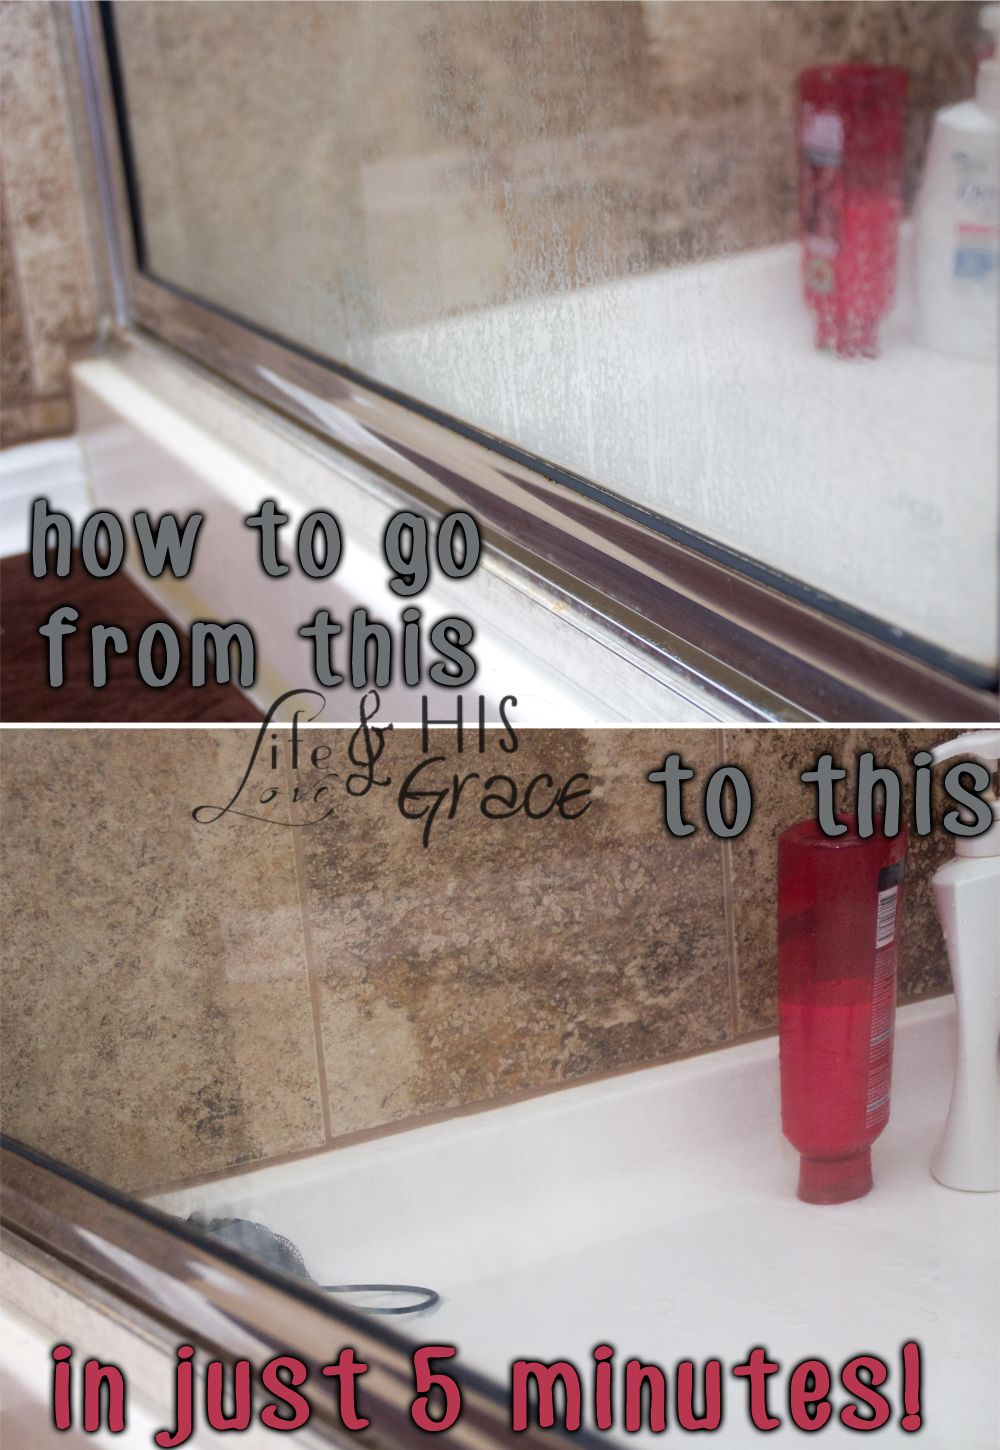 How To Glass Shower Door Soap Scum Removal Cleaning Glass Shower Doors Cleaning Shower Glass Cleaning Glass